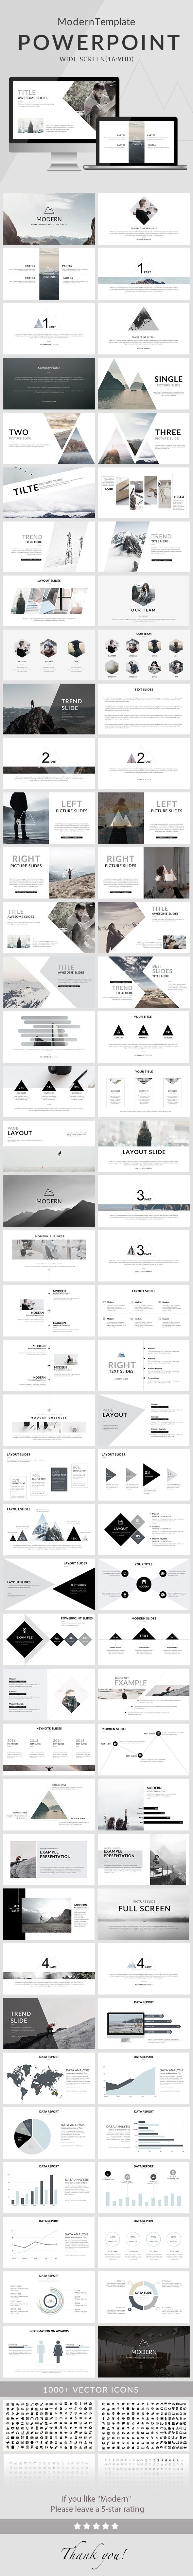 modern - powerpoint template | creative powerpoint, template and, Modern powerpoint